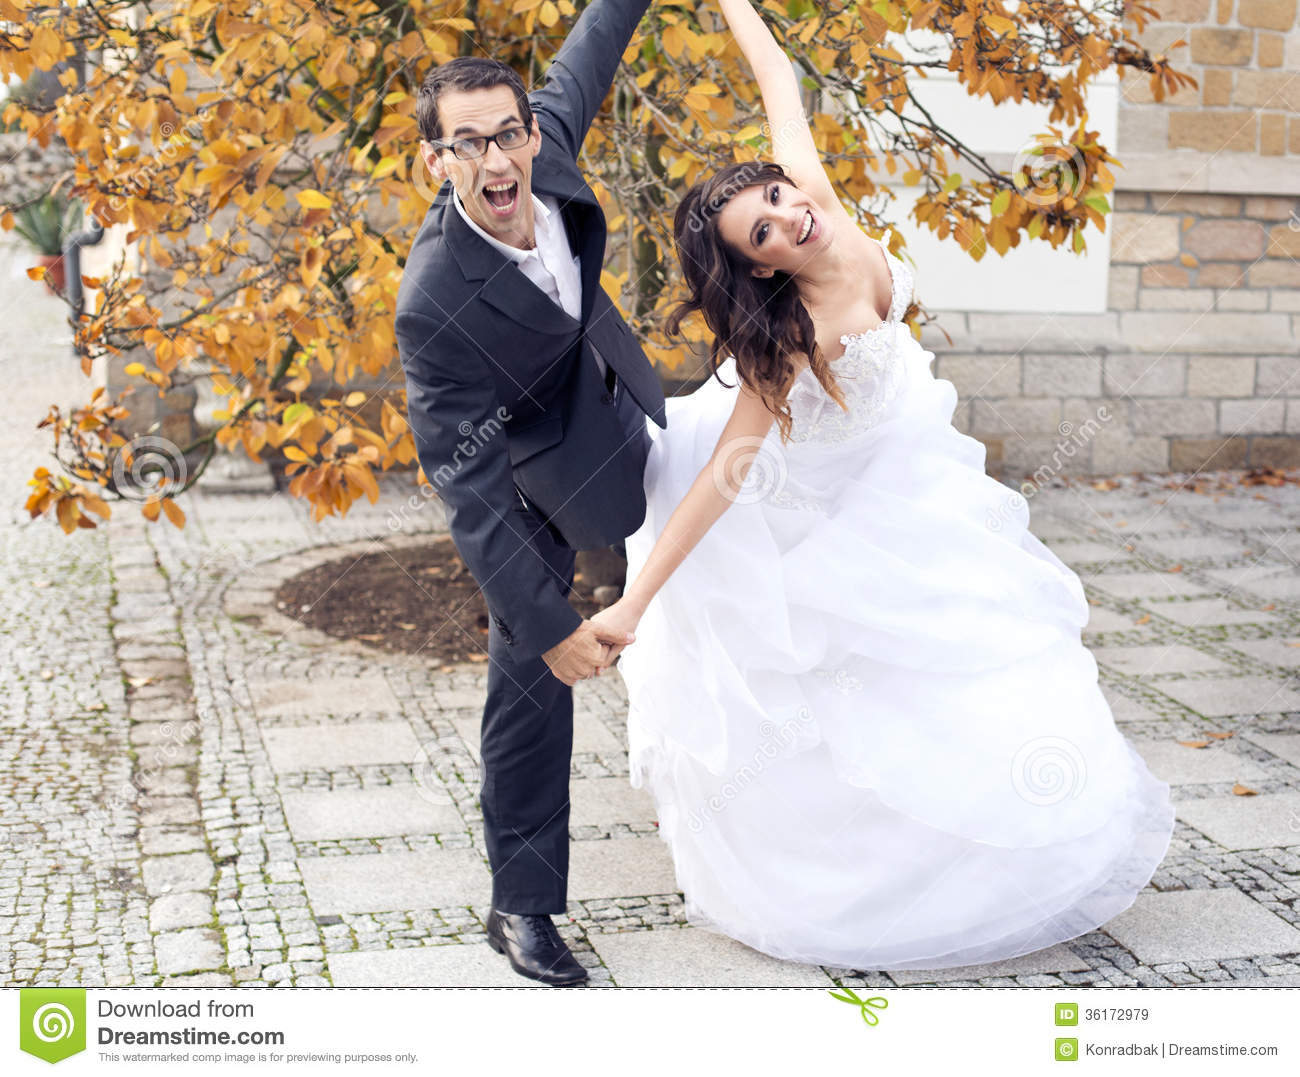 laughing wedding couple in funny pose stock image image of hand female 36172979. Black Bedroom Furniture Sets. Home Design Ideas